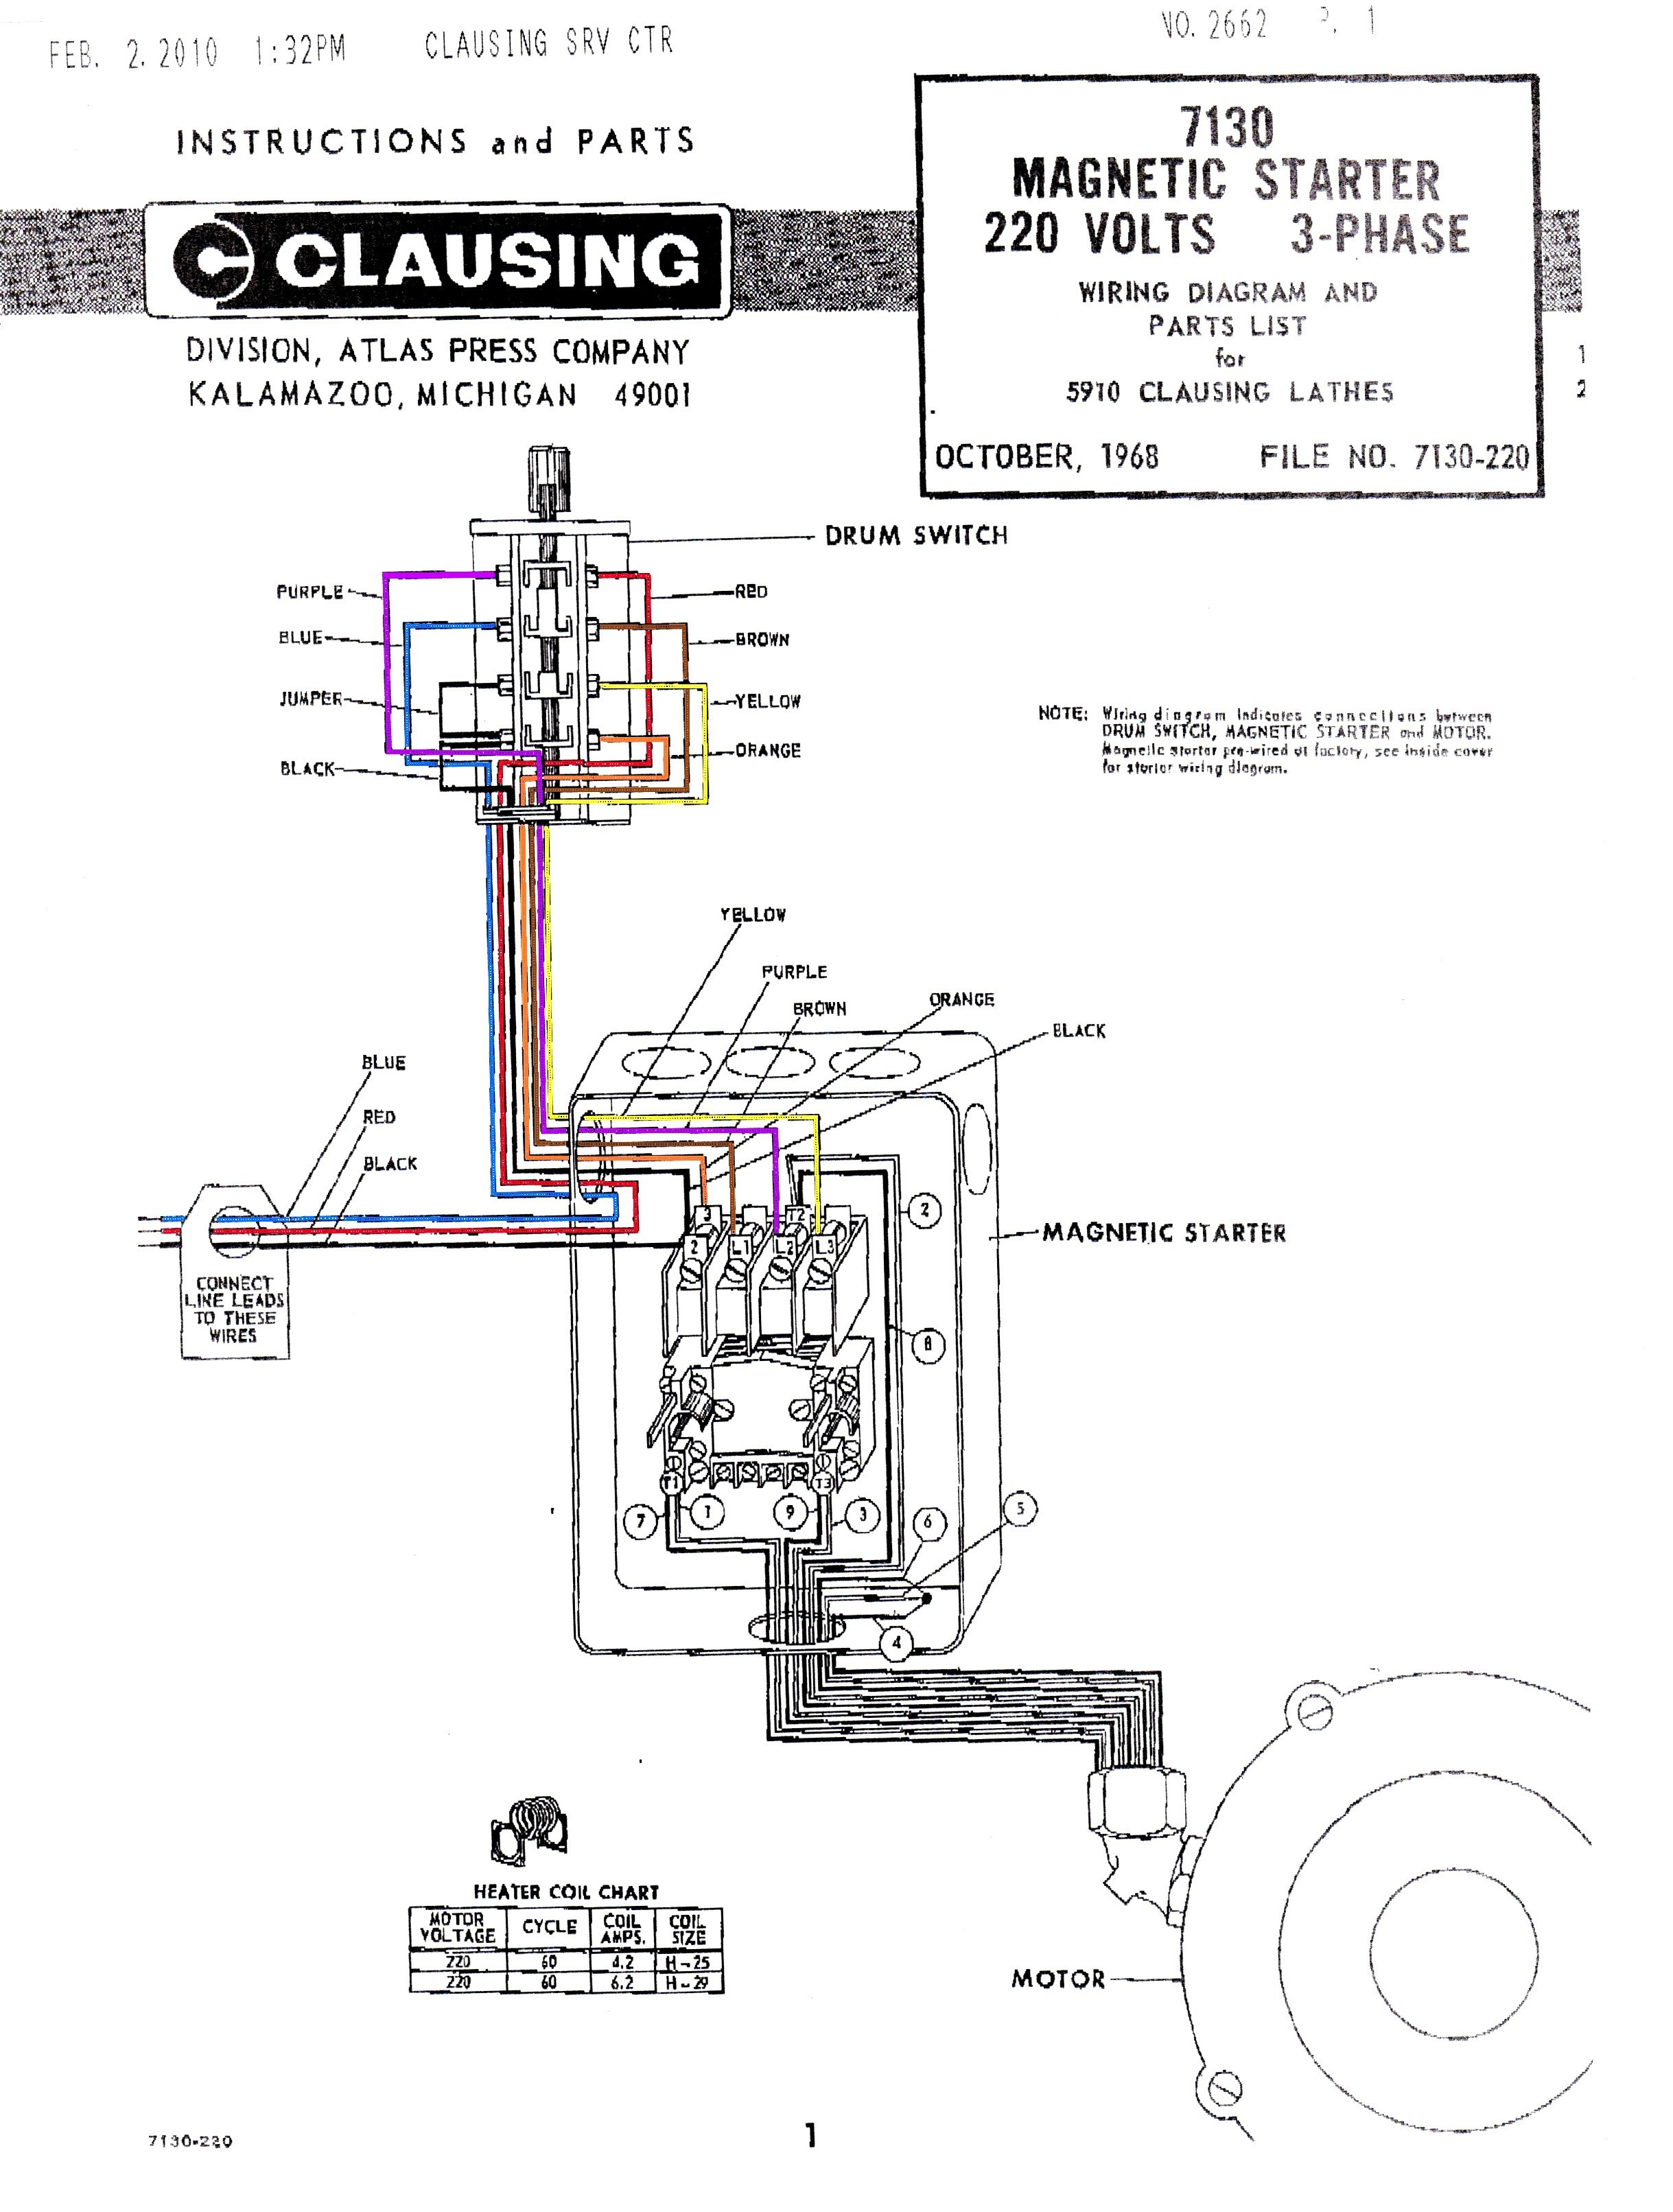 small resolution of motor wiring diagrams free download wiring diagram schematic electric motor wiring diagram free download wiring diagram schematic